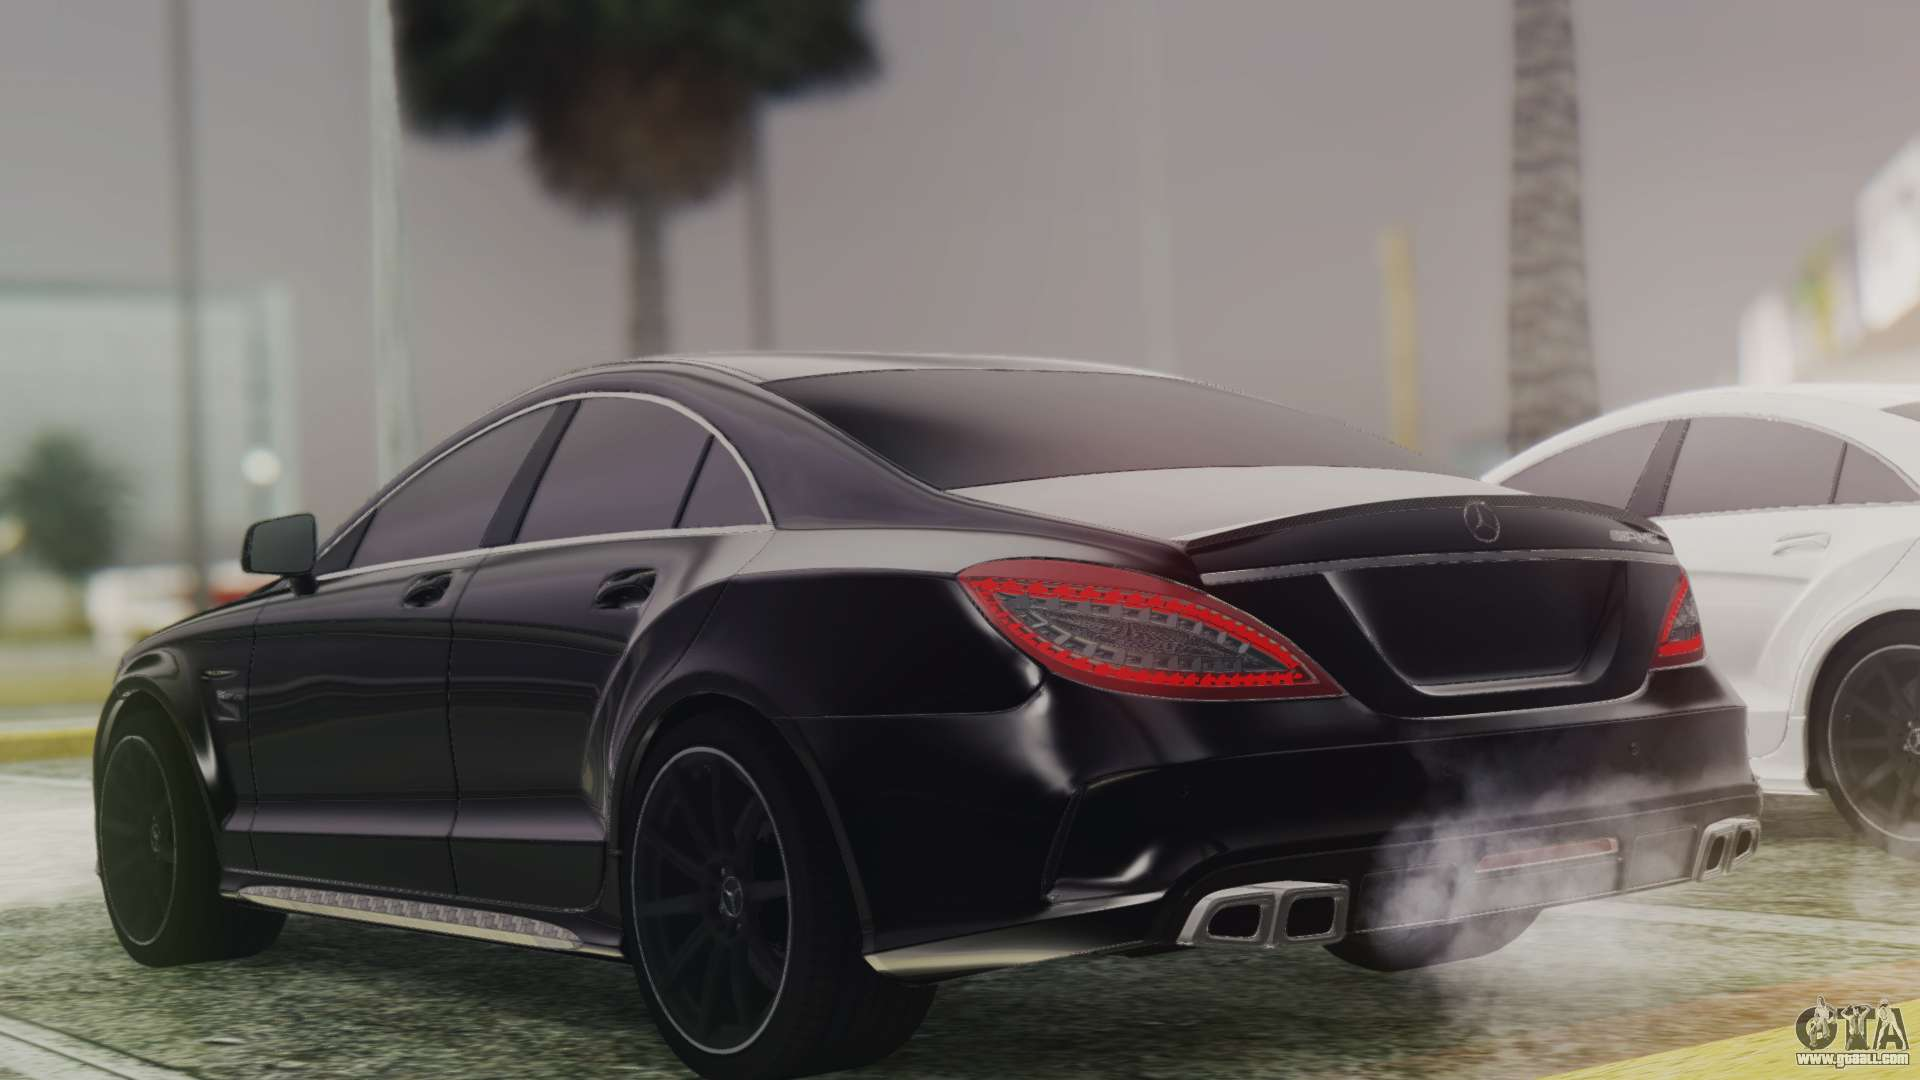 Mercedes benz cls 63 amg w218 for gta san andreas for Mercedes benz cls 63 amg coupe